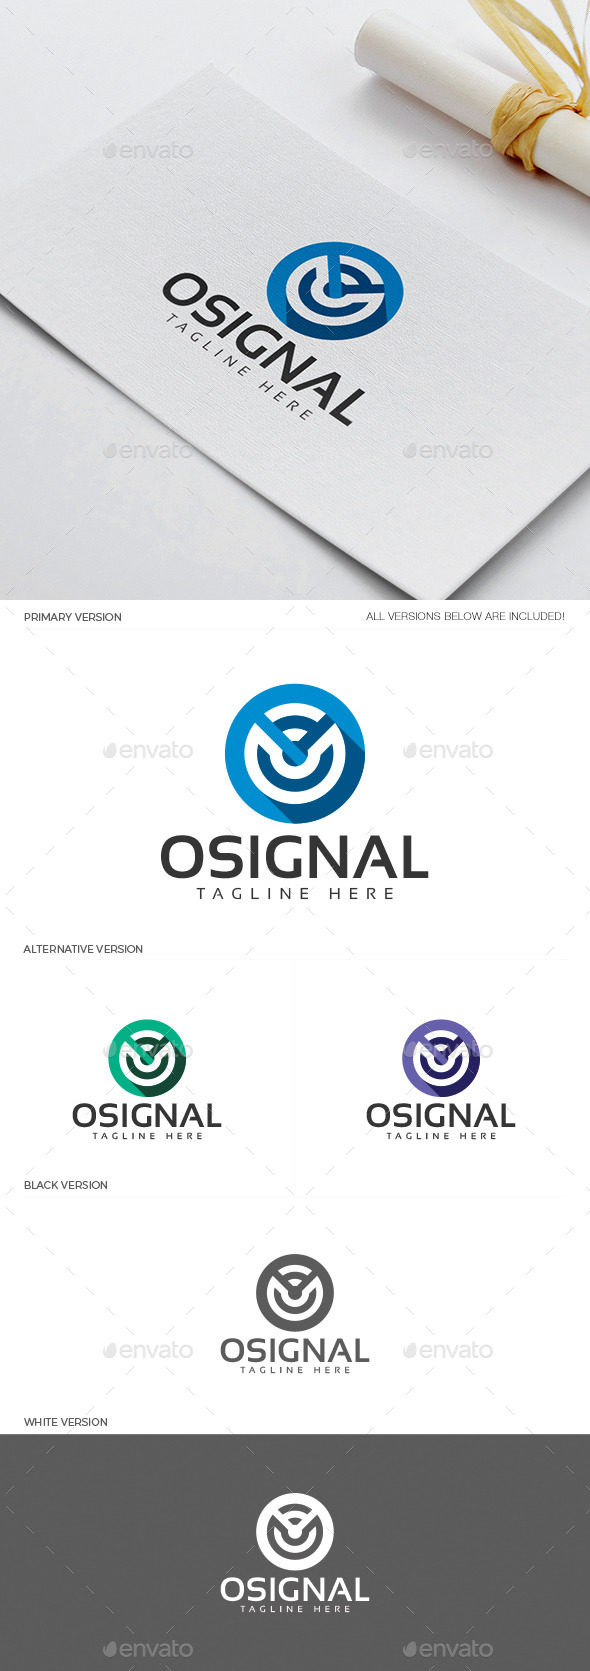 Osignal Logo - Objects Logo Templates